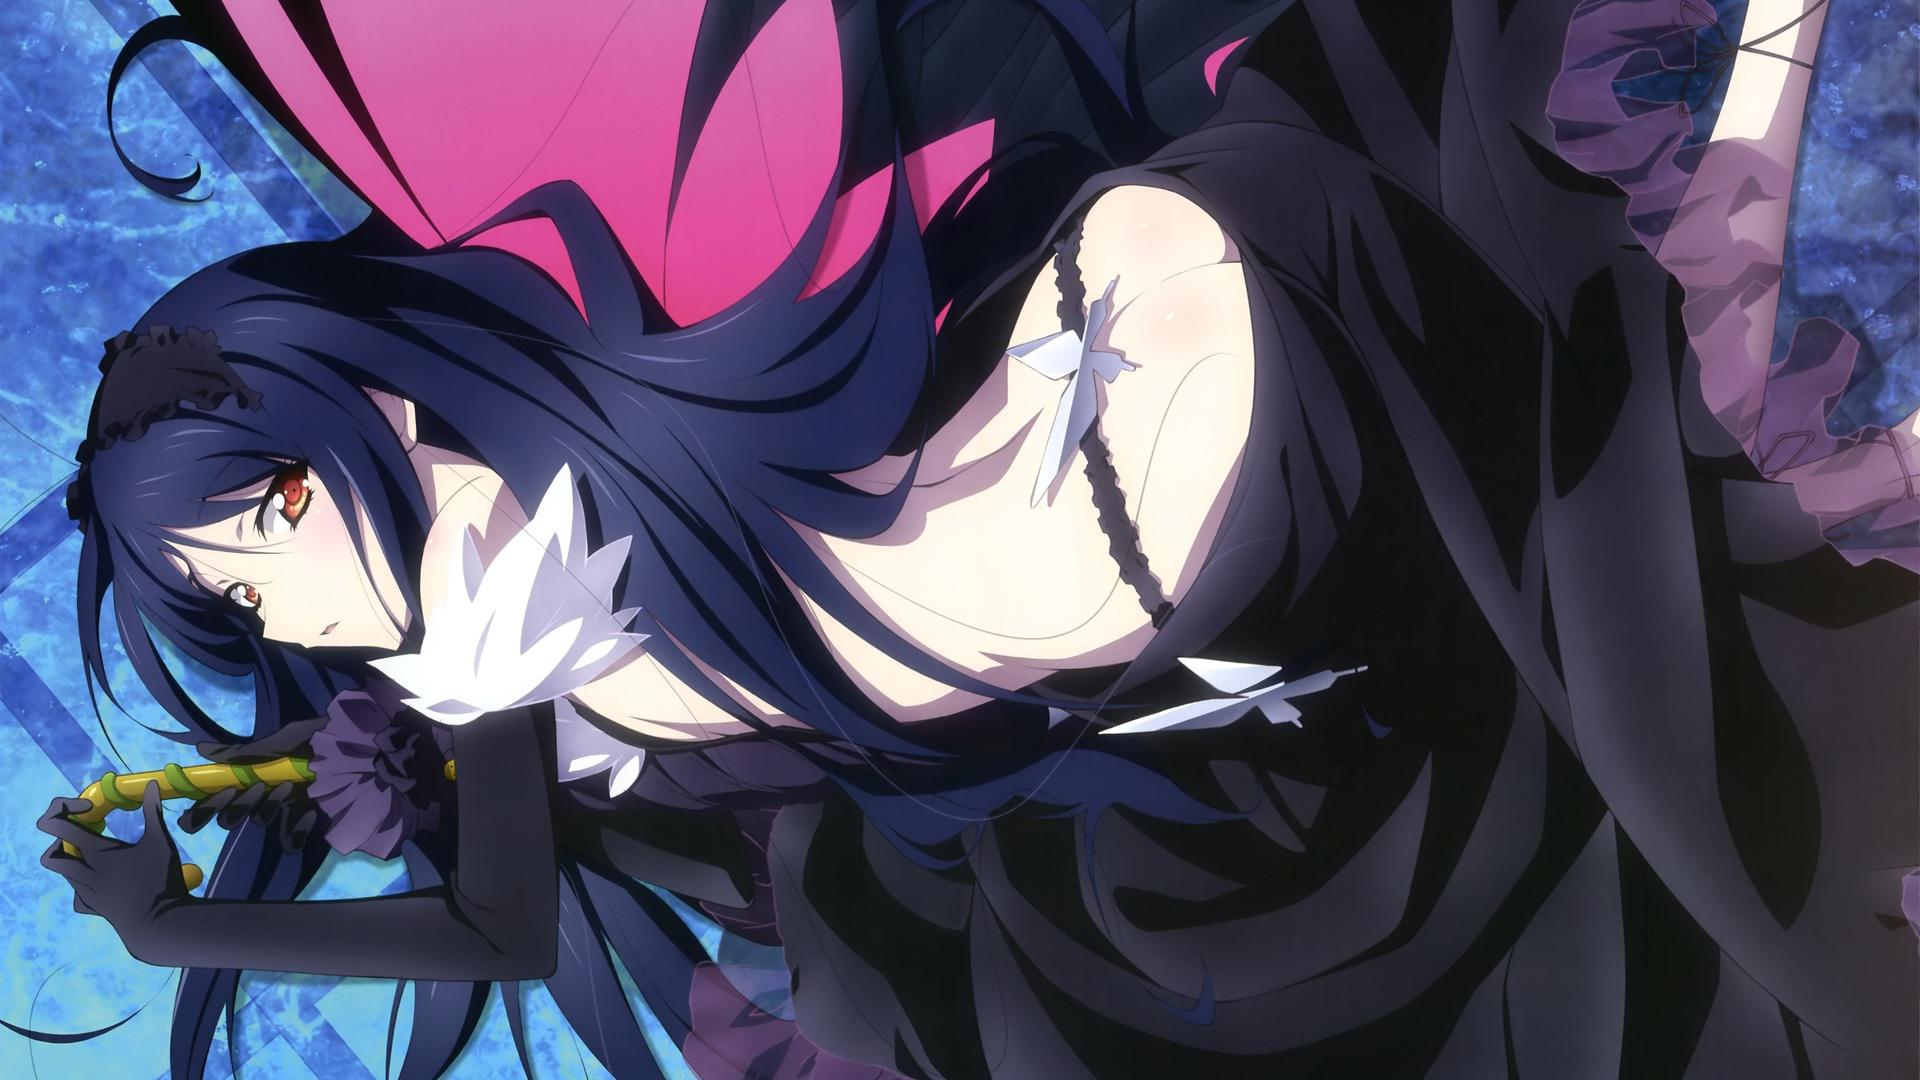 Accel World Fanart Anime and Manga in